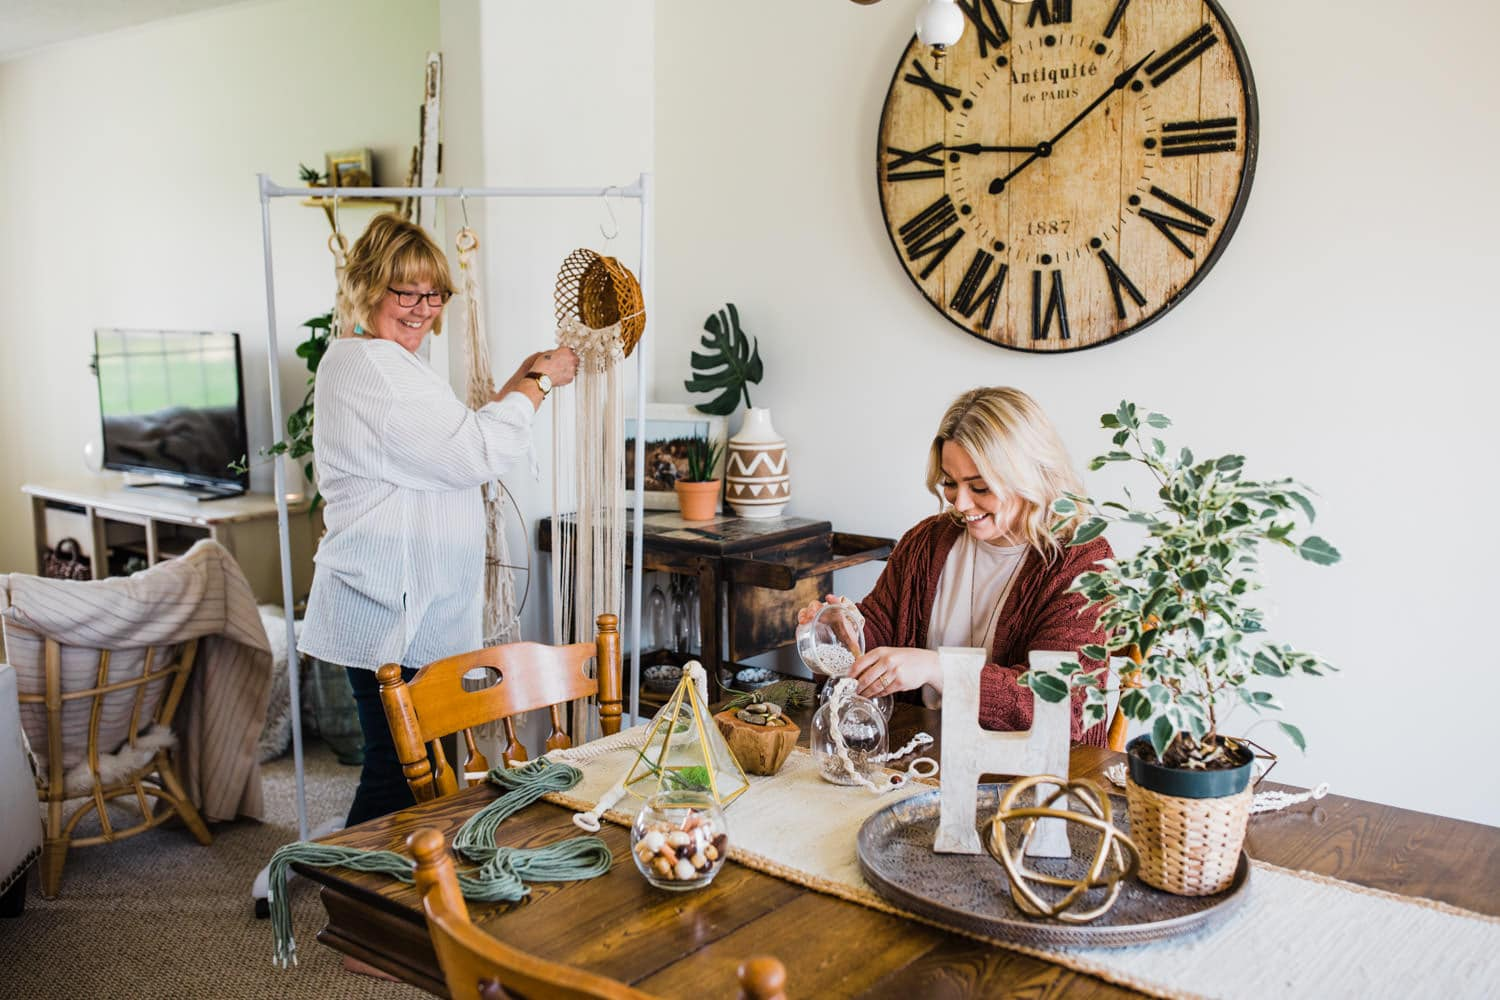 mom and daughter work on plants and macrame - ottawa brand photography